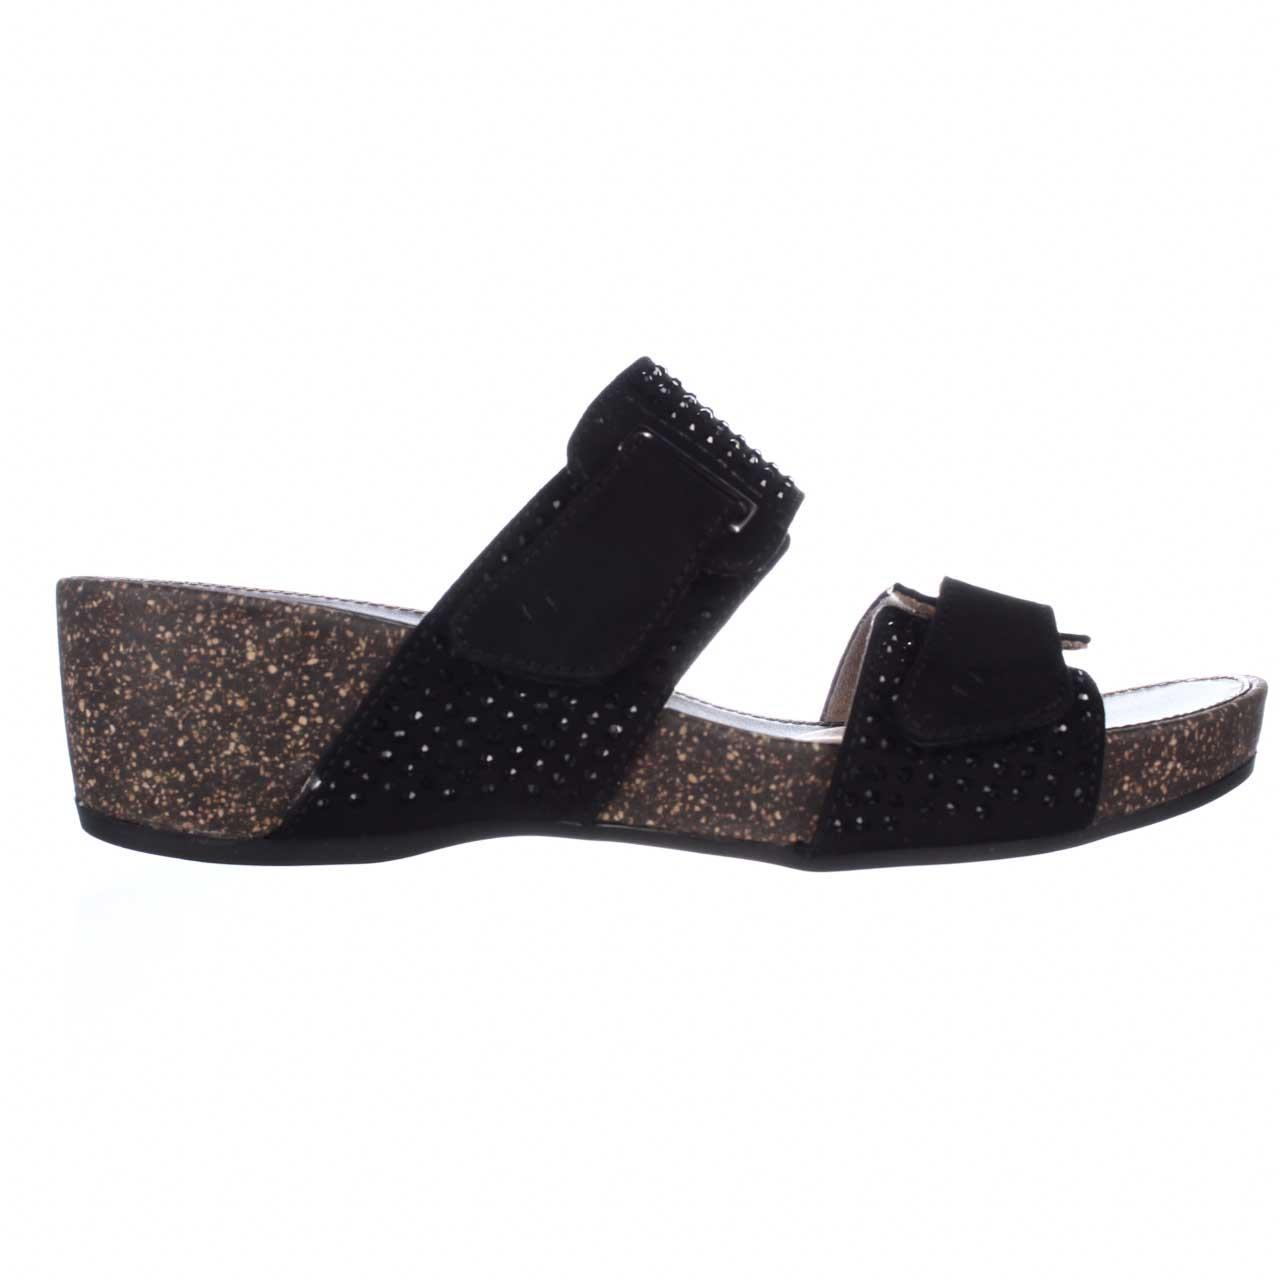 2044bda17ca2 Naturalizer - Womens naturalizer Carena Wedge Slide Sandals - Black -  Walmart.com